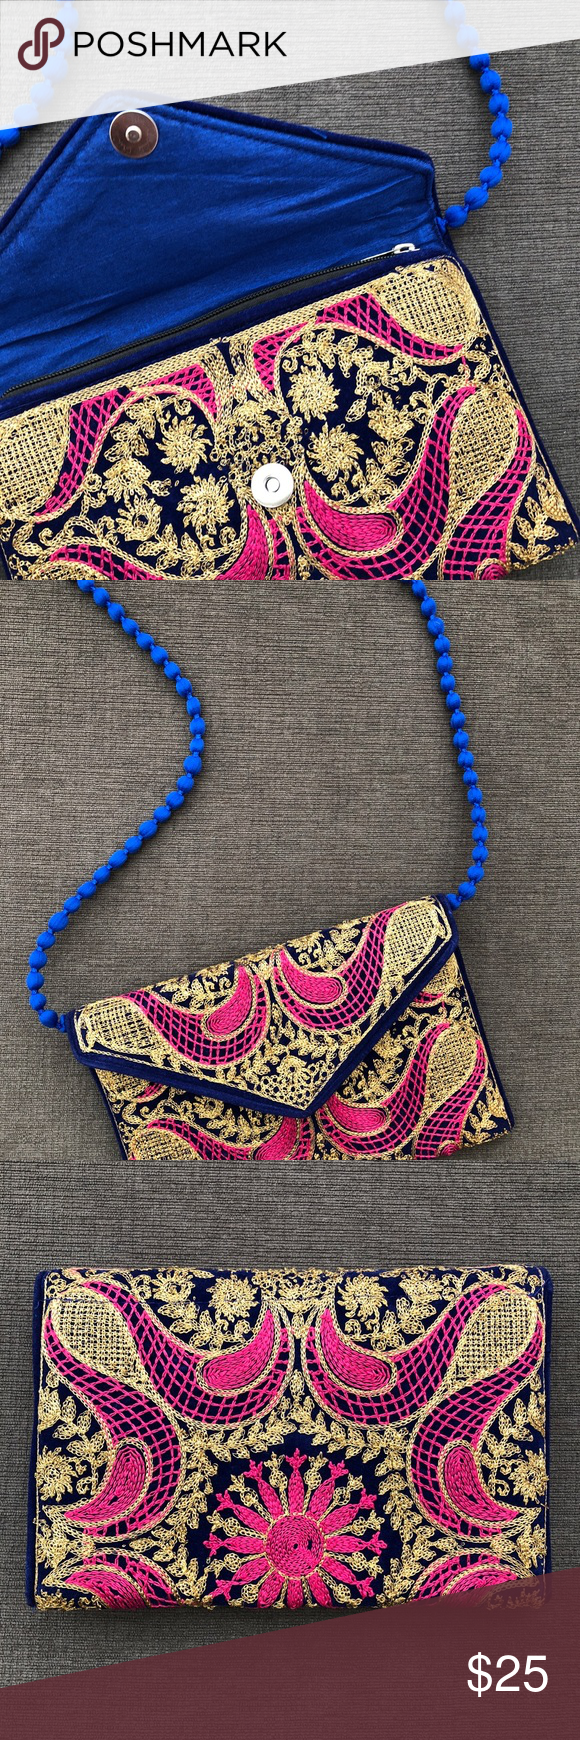 Embroidered clutch (gold/blue/pink). Made in India NWT